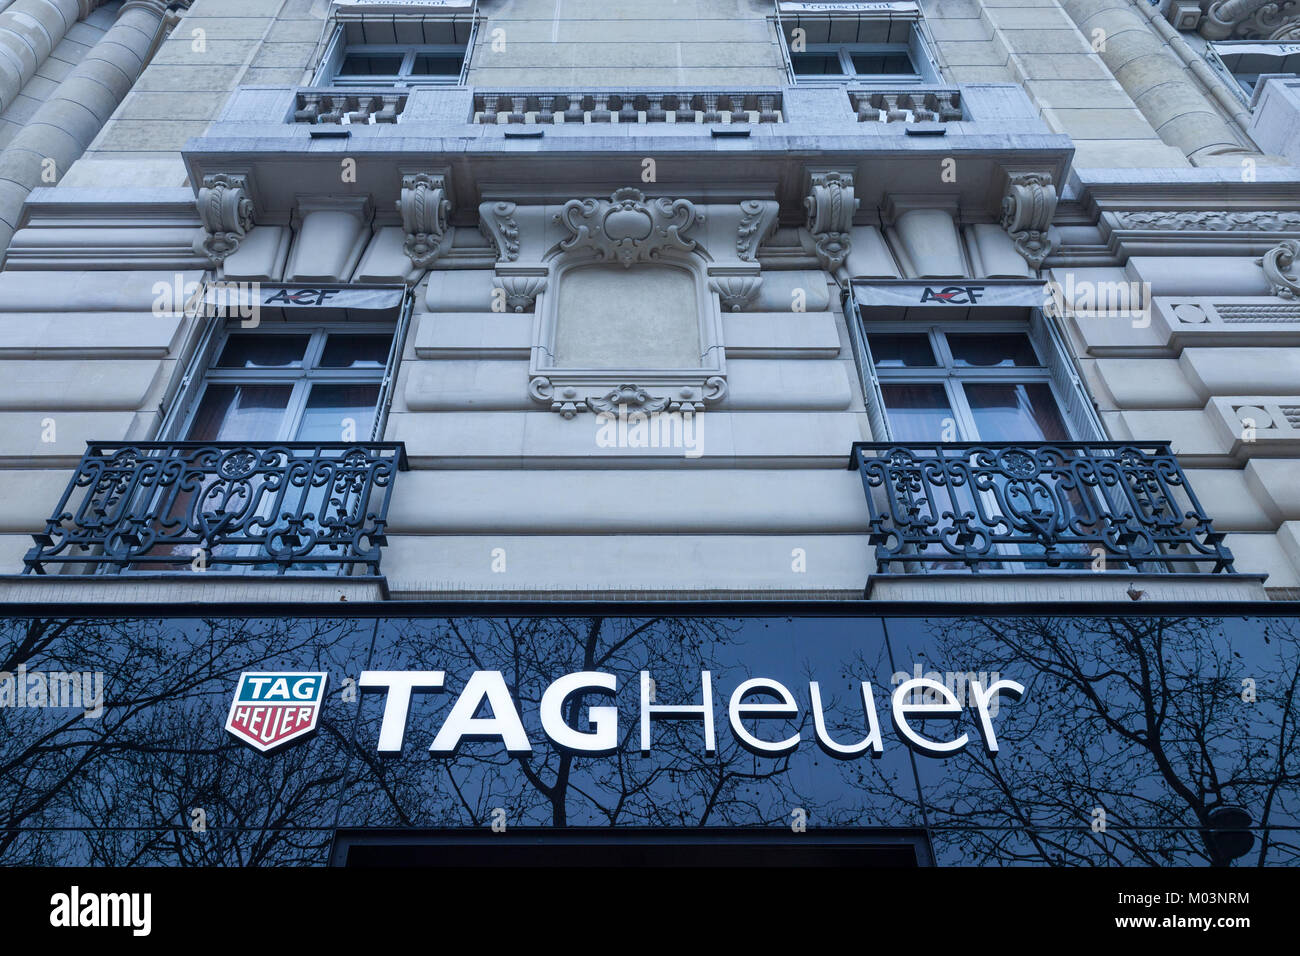 PARIS, FRANCE - DECEMBER 20, 2017: Tag Heuer logo on their main shop on Champs Elysees avenue. TAG Heuer is a Swiss - Stock Image